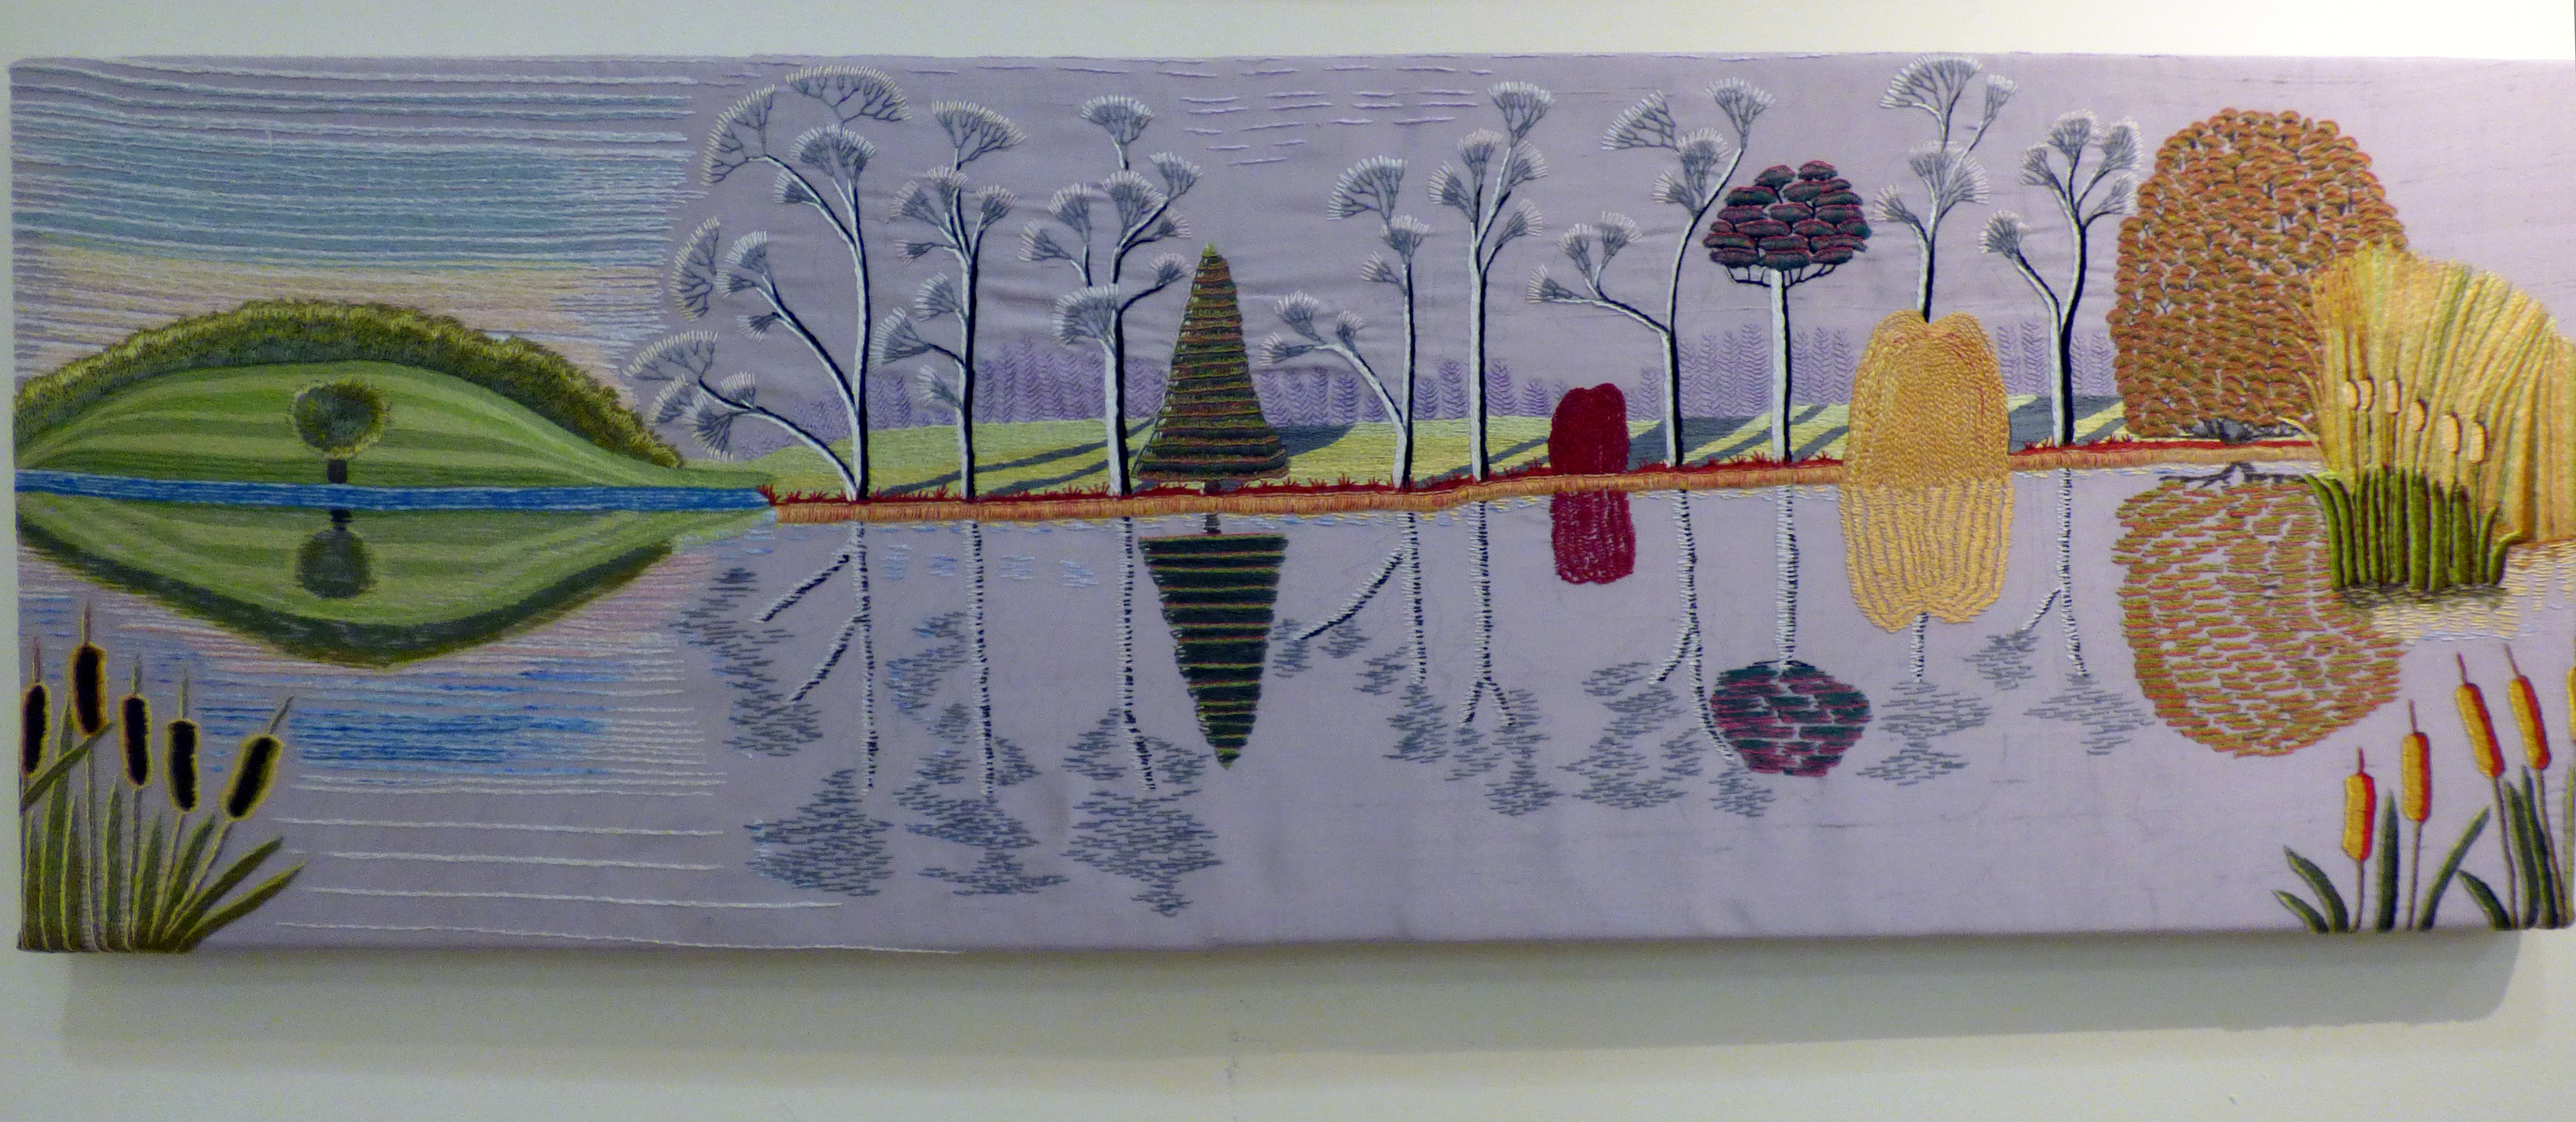 LAKESIDE by Valerie Grant, Glossop & District EG, hand embroidery with silk threads on silk dupion